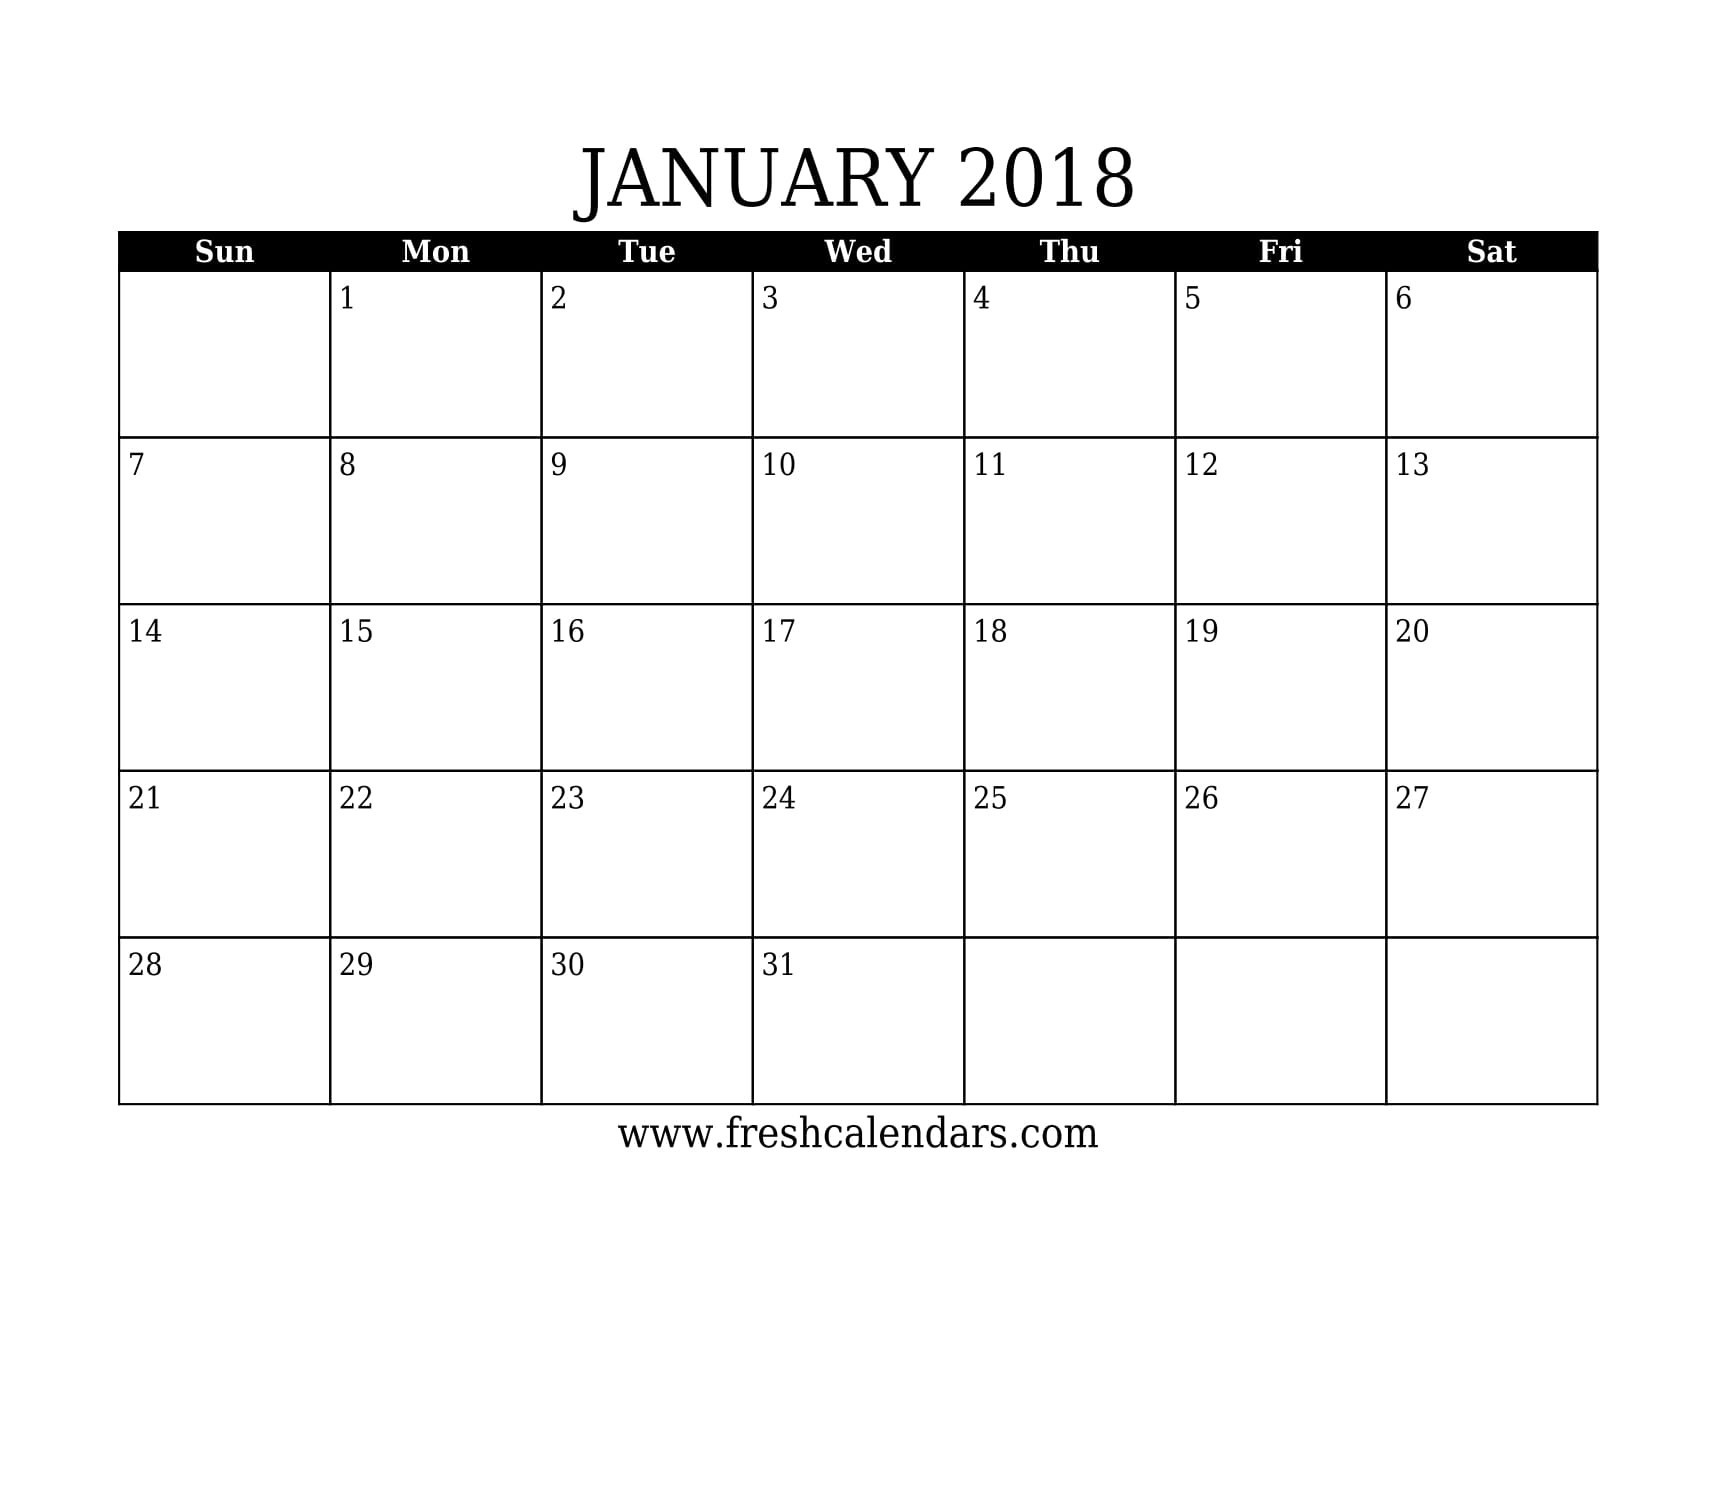 March Calendar Blank 2019 Más Actual Tips with Regard to Calendar January to March 2019 Calendar Online Of March Calendar Blank 2019 Más Recientemente Liberado Art Prints Lunar Calendar 2019